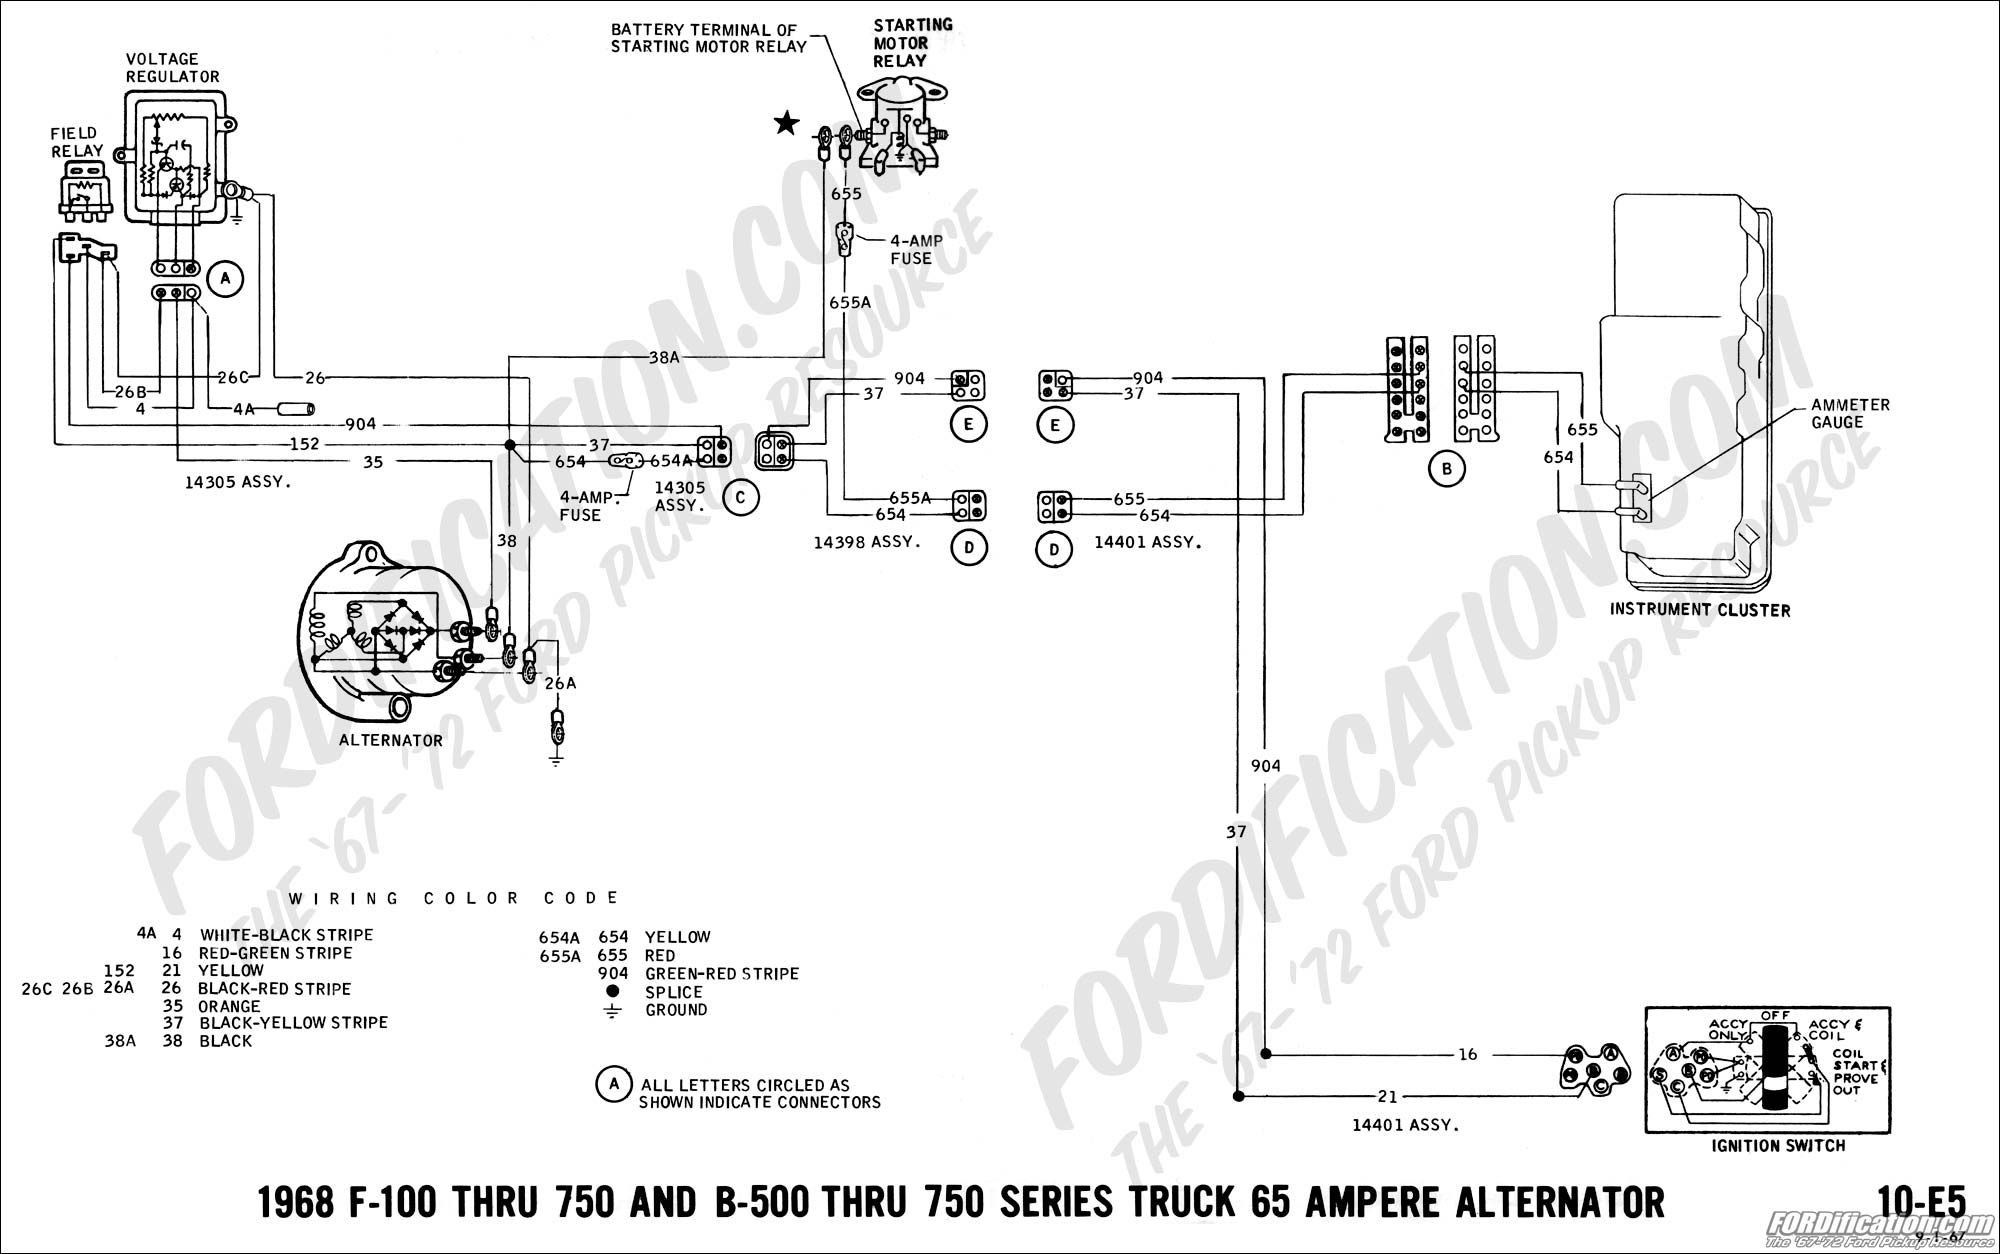 Unique Wiring Diagram Ac Split Mitsubishi Diagram Diagramtemplate Diagramsample